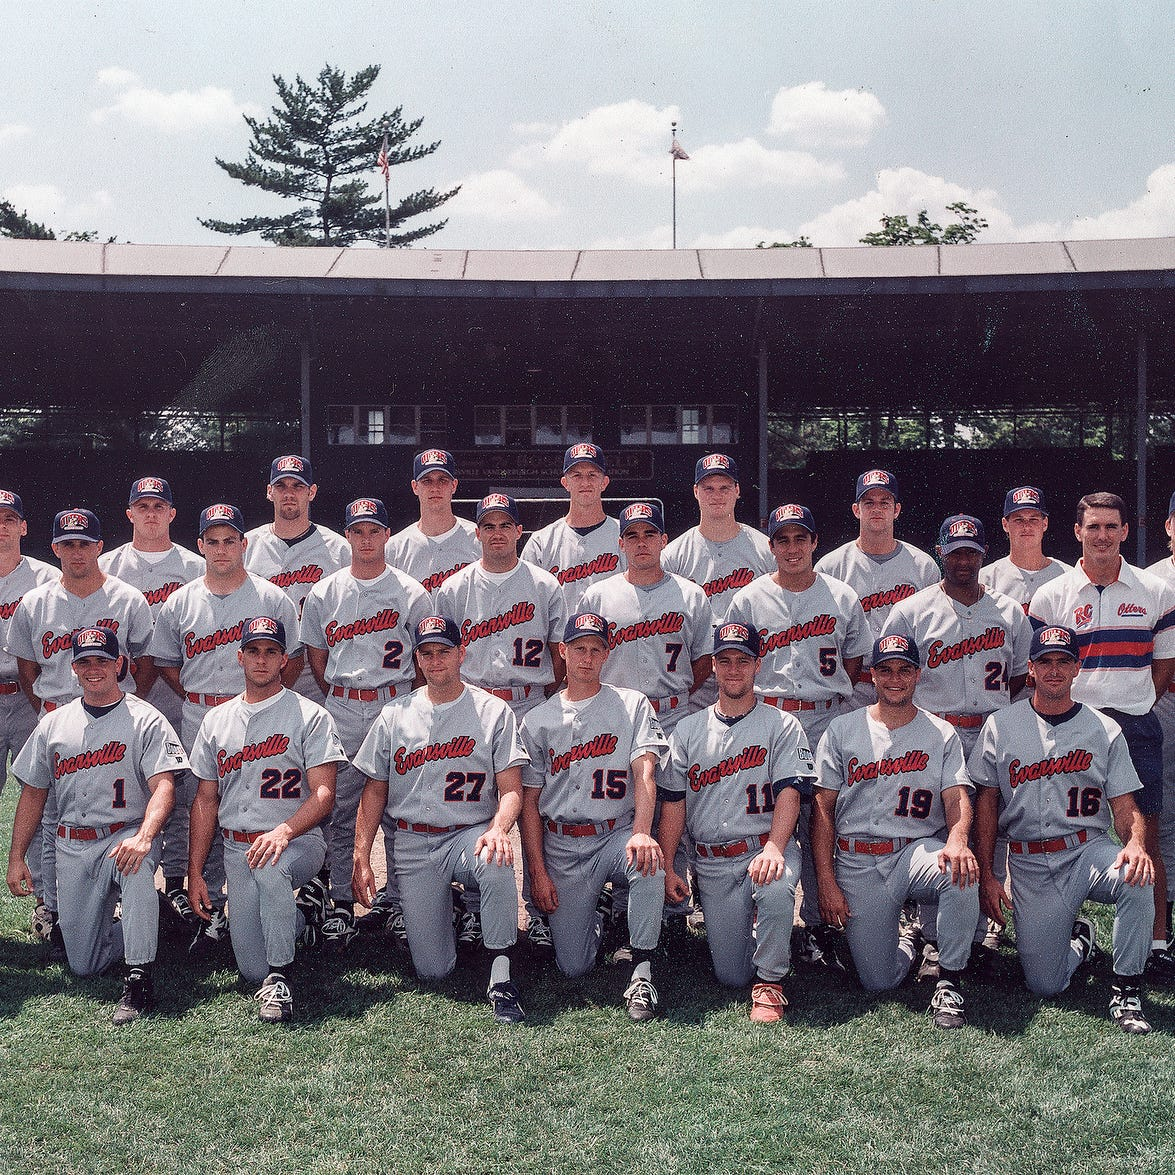 Catching up with original 1995 Otters, celebrating team's 25th anniversary